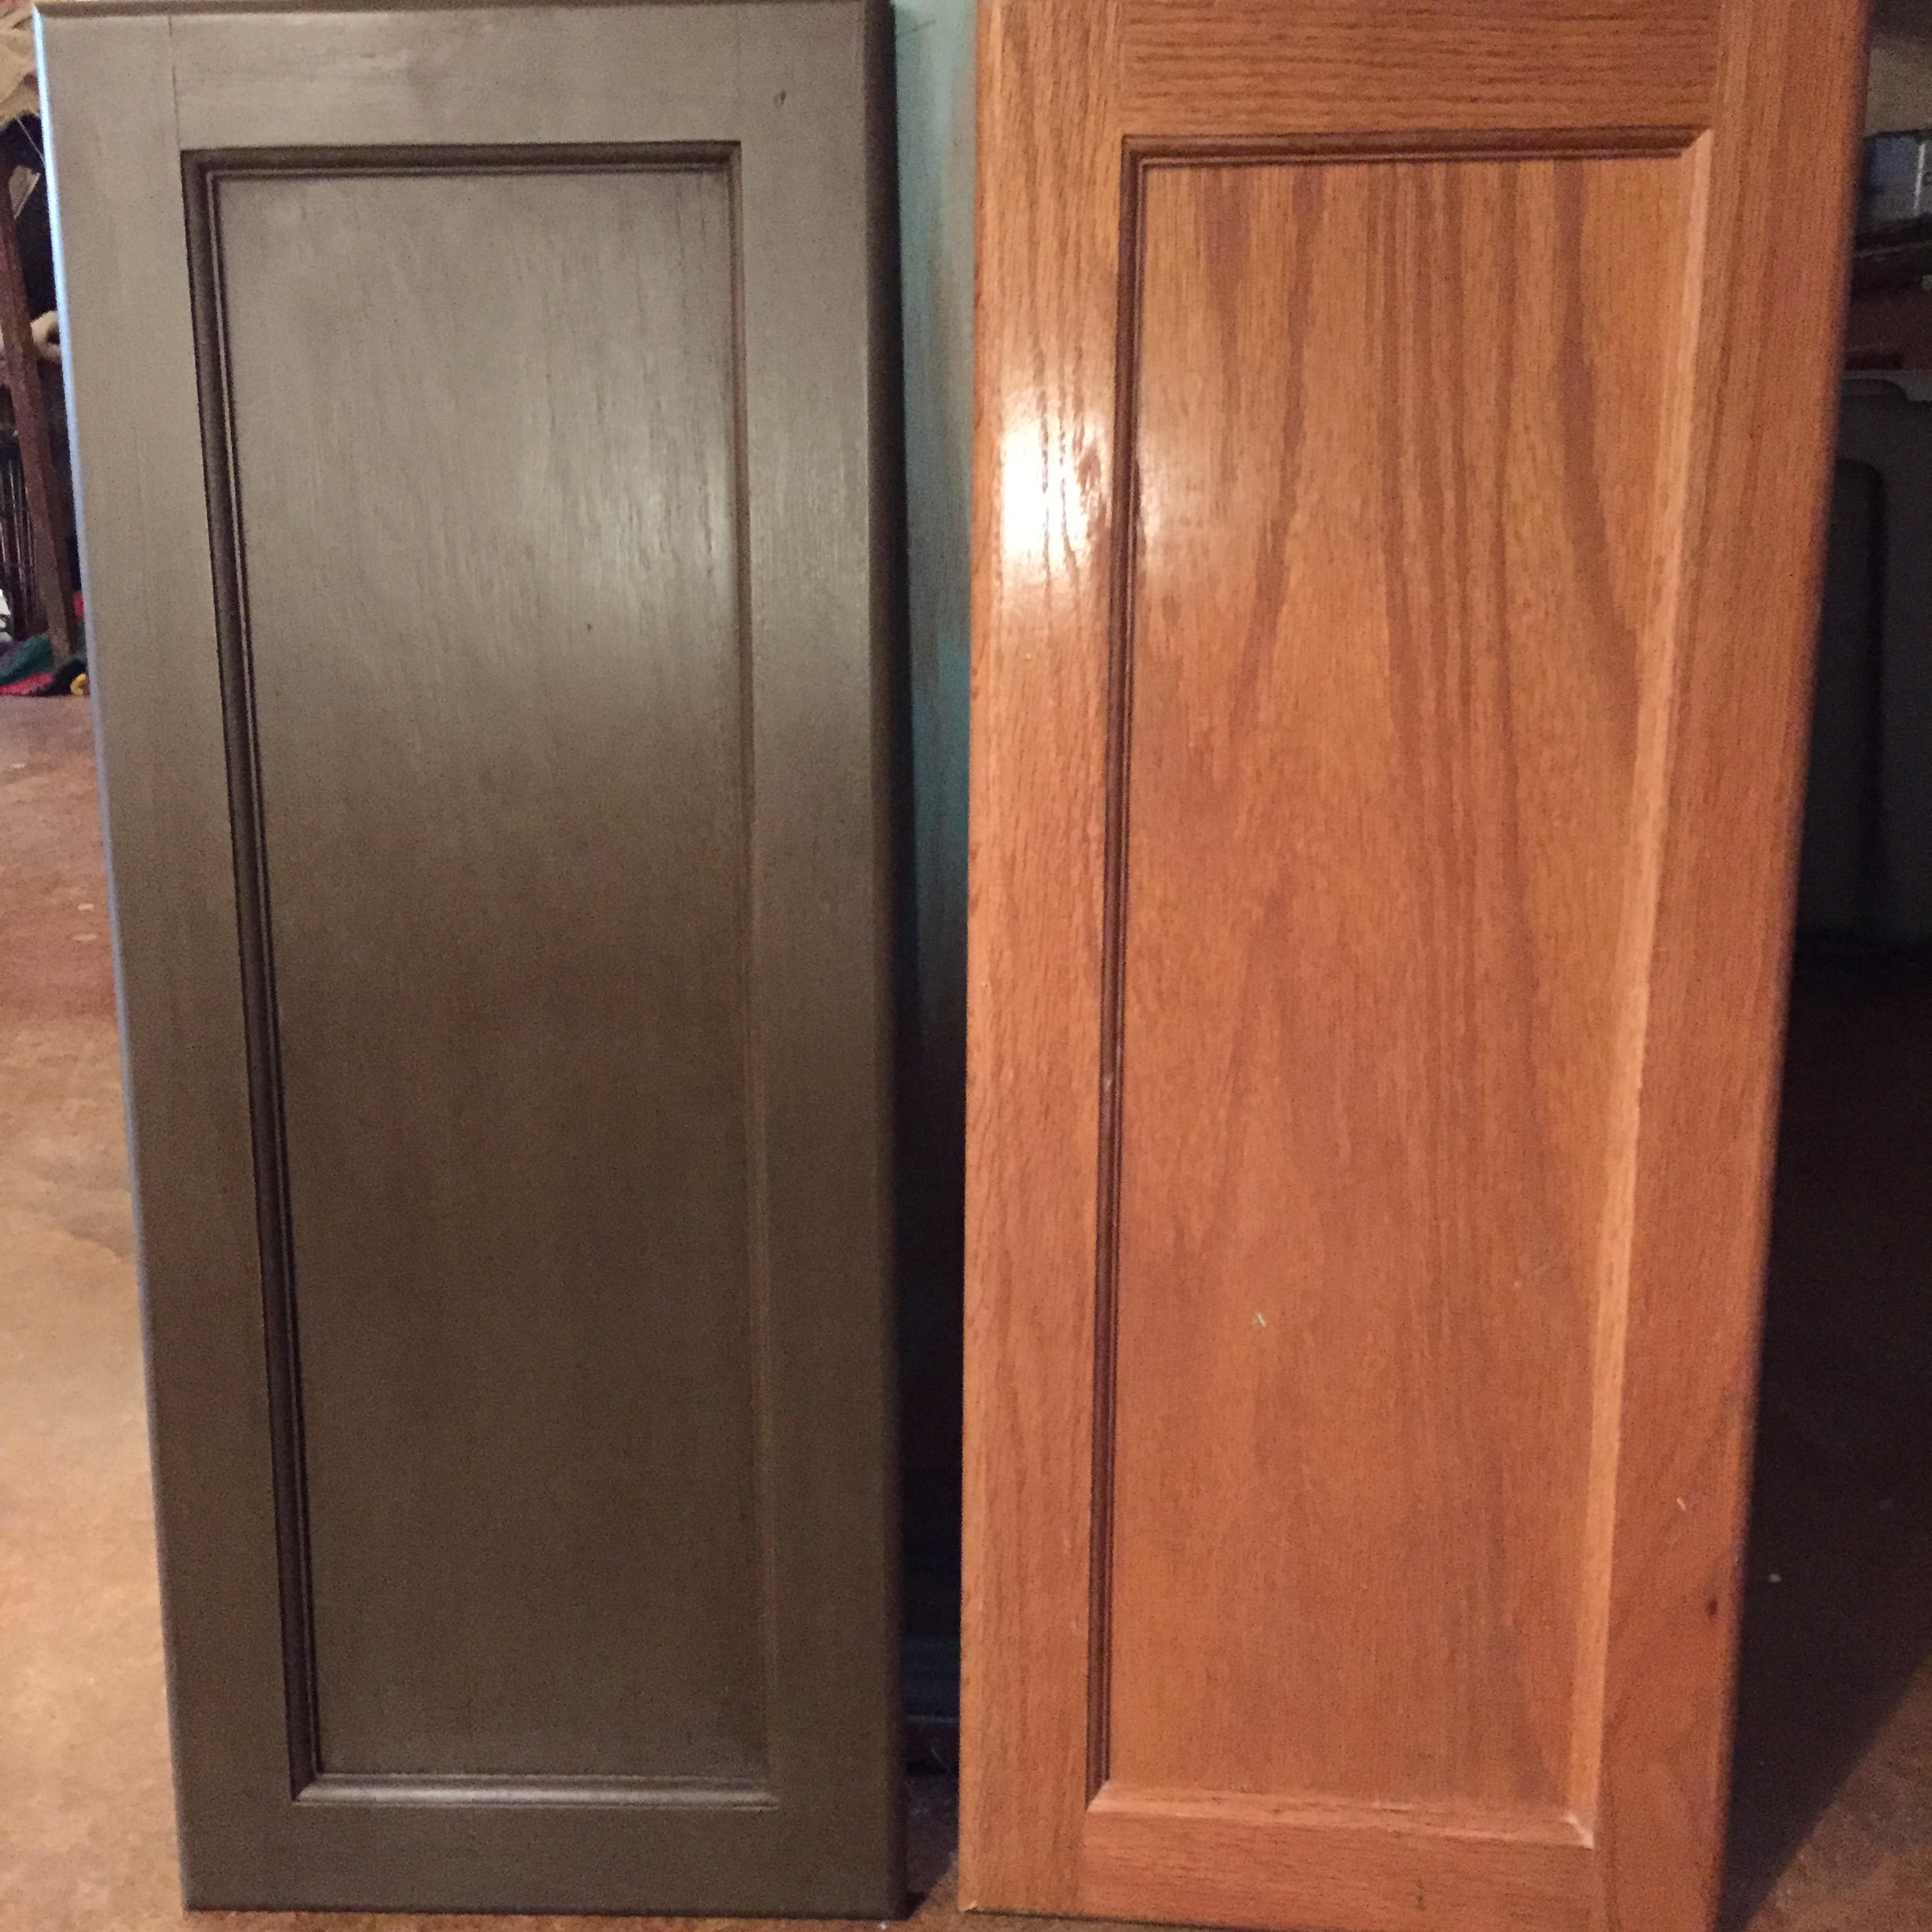 Annie Sloan Dark Chocolate Brown Master Bathroom Cabinet Makeover